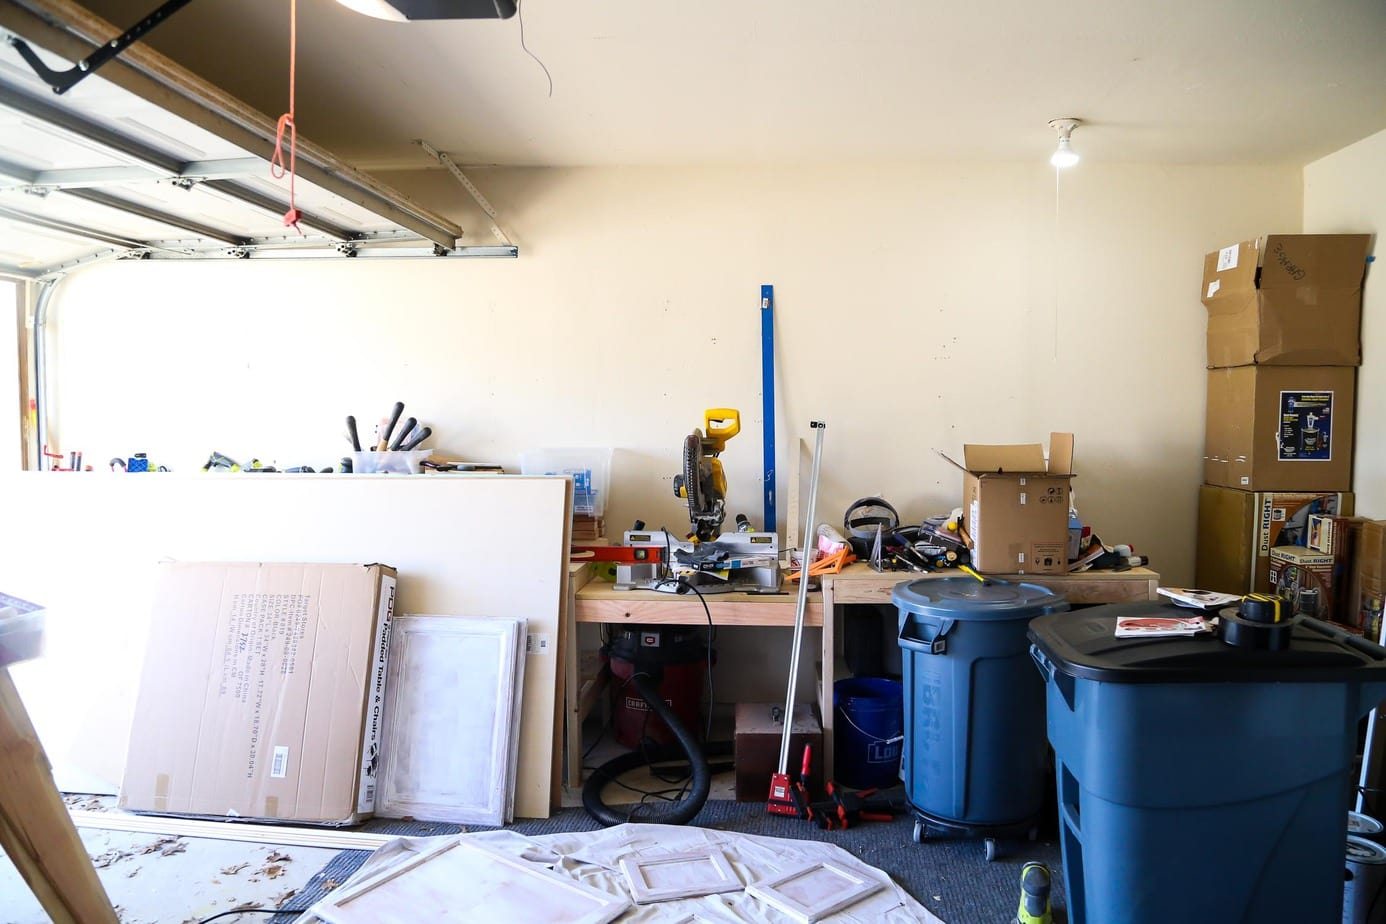 Planning stages of turning a garage into a workshop